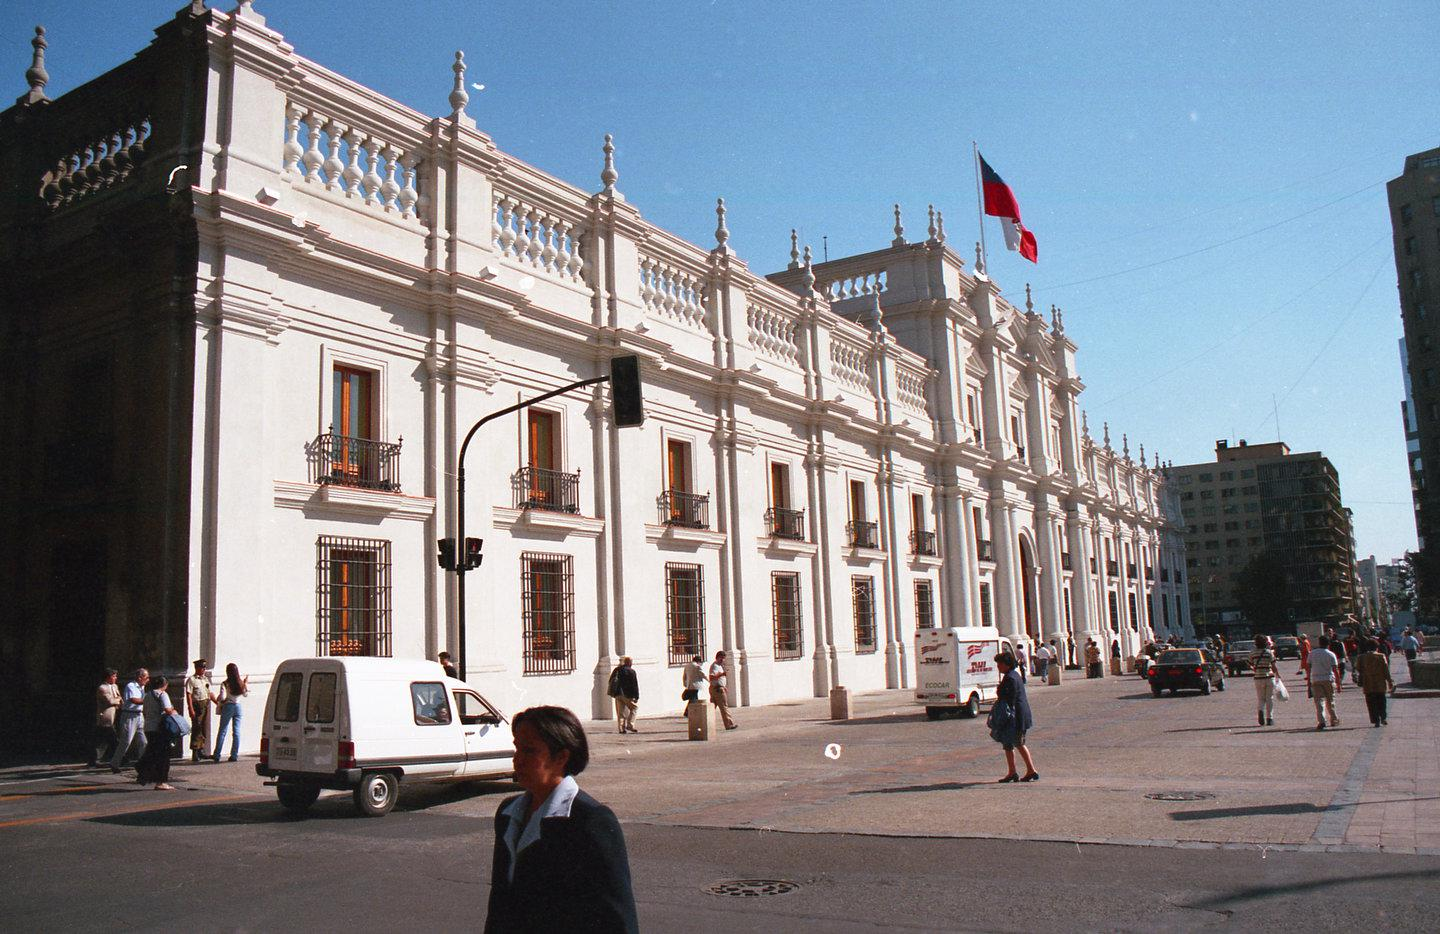 Enterreno - Fotos históricas de chile - fotos antiguas de Chile - Palacio de La Moneda